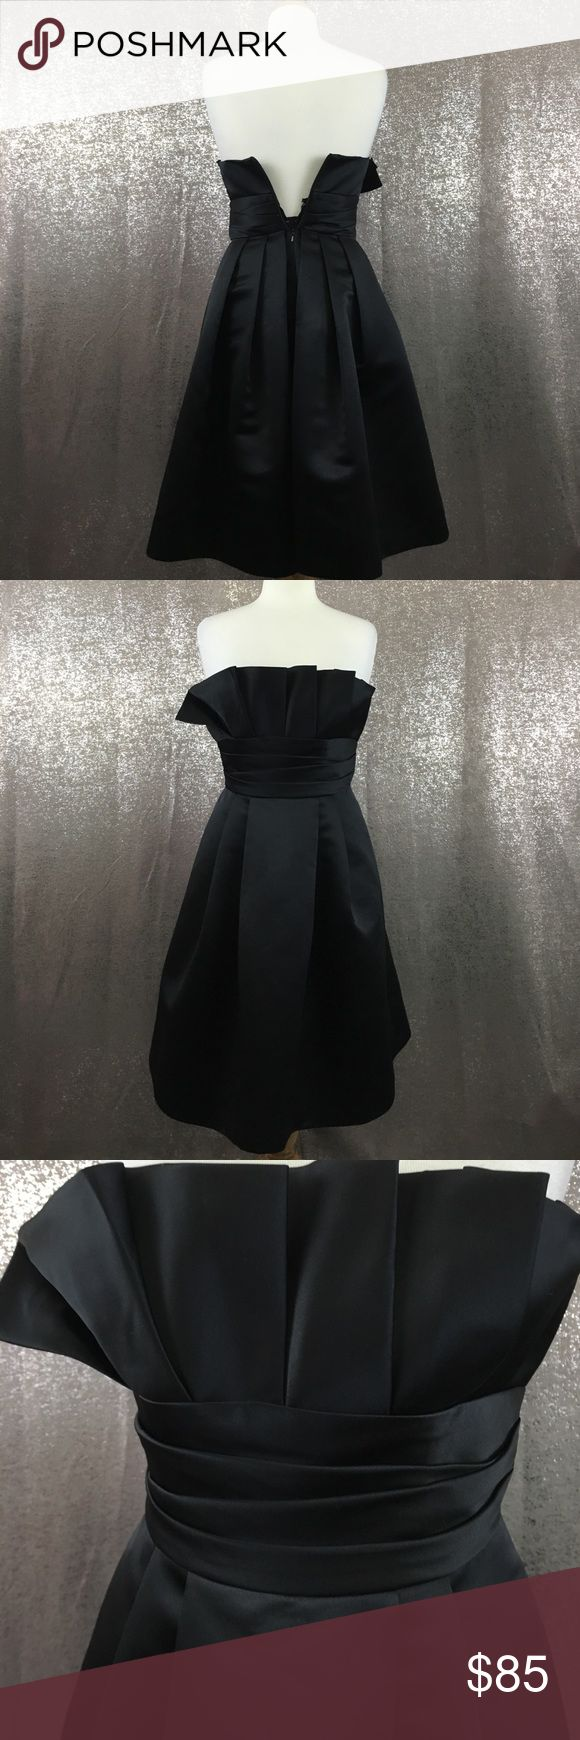 Priscilla of Boston strapless LBD cocktail dress In excellent condition with no flaws, too small for the mannequin (zipper works fine!)   NO TRADES. NO HOLDS. NO LOWBALLERS. NO NONSENSE priscilla of boston Dresses Wedding